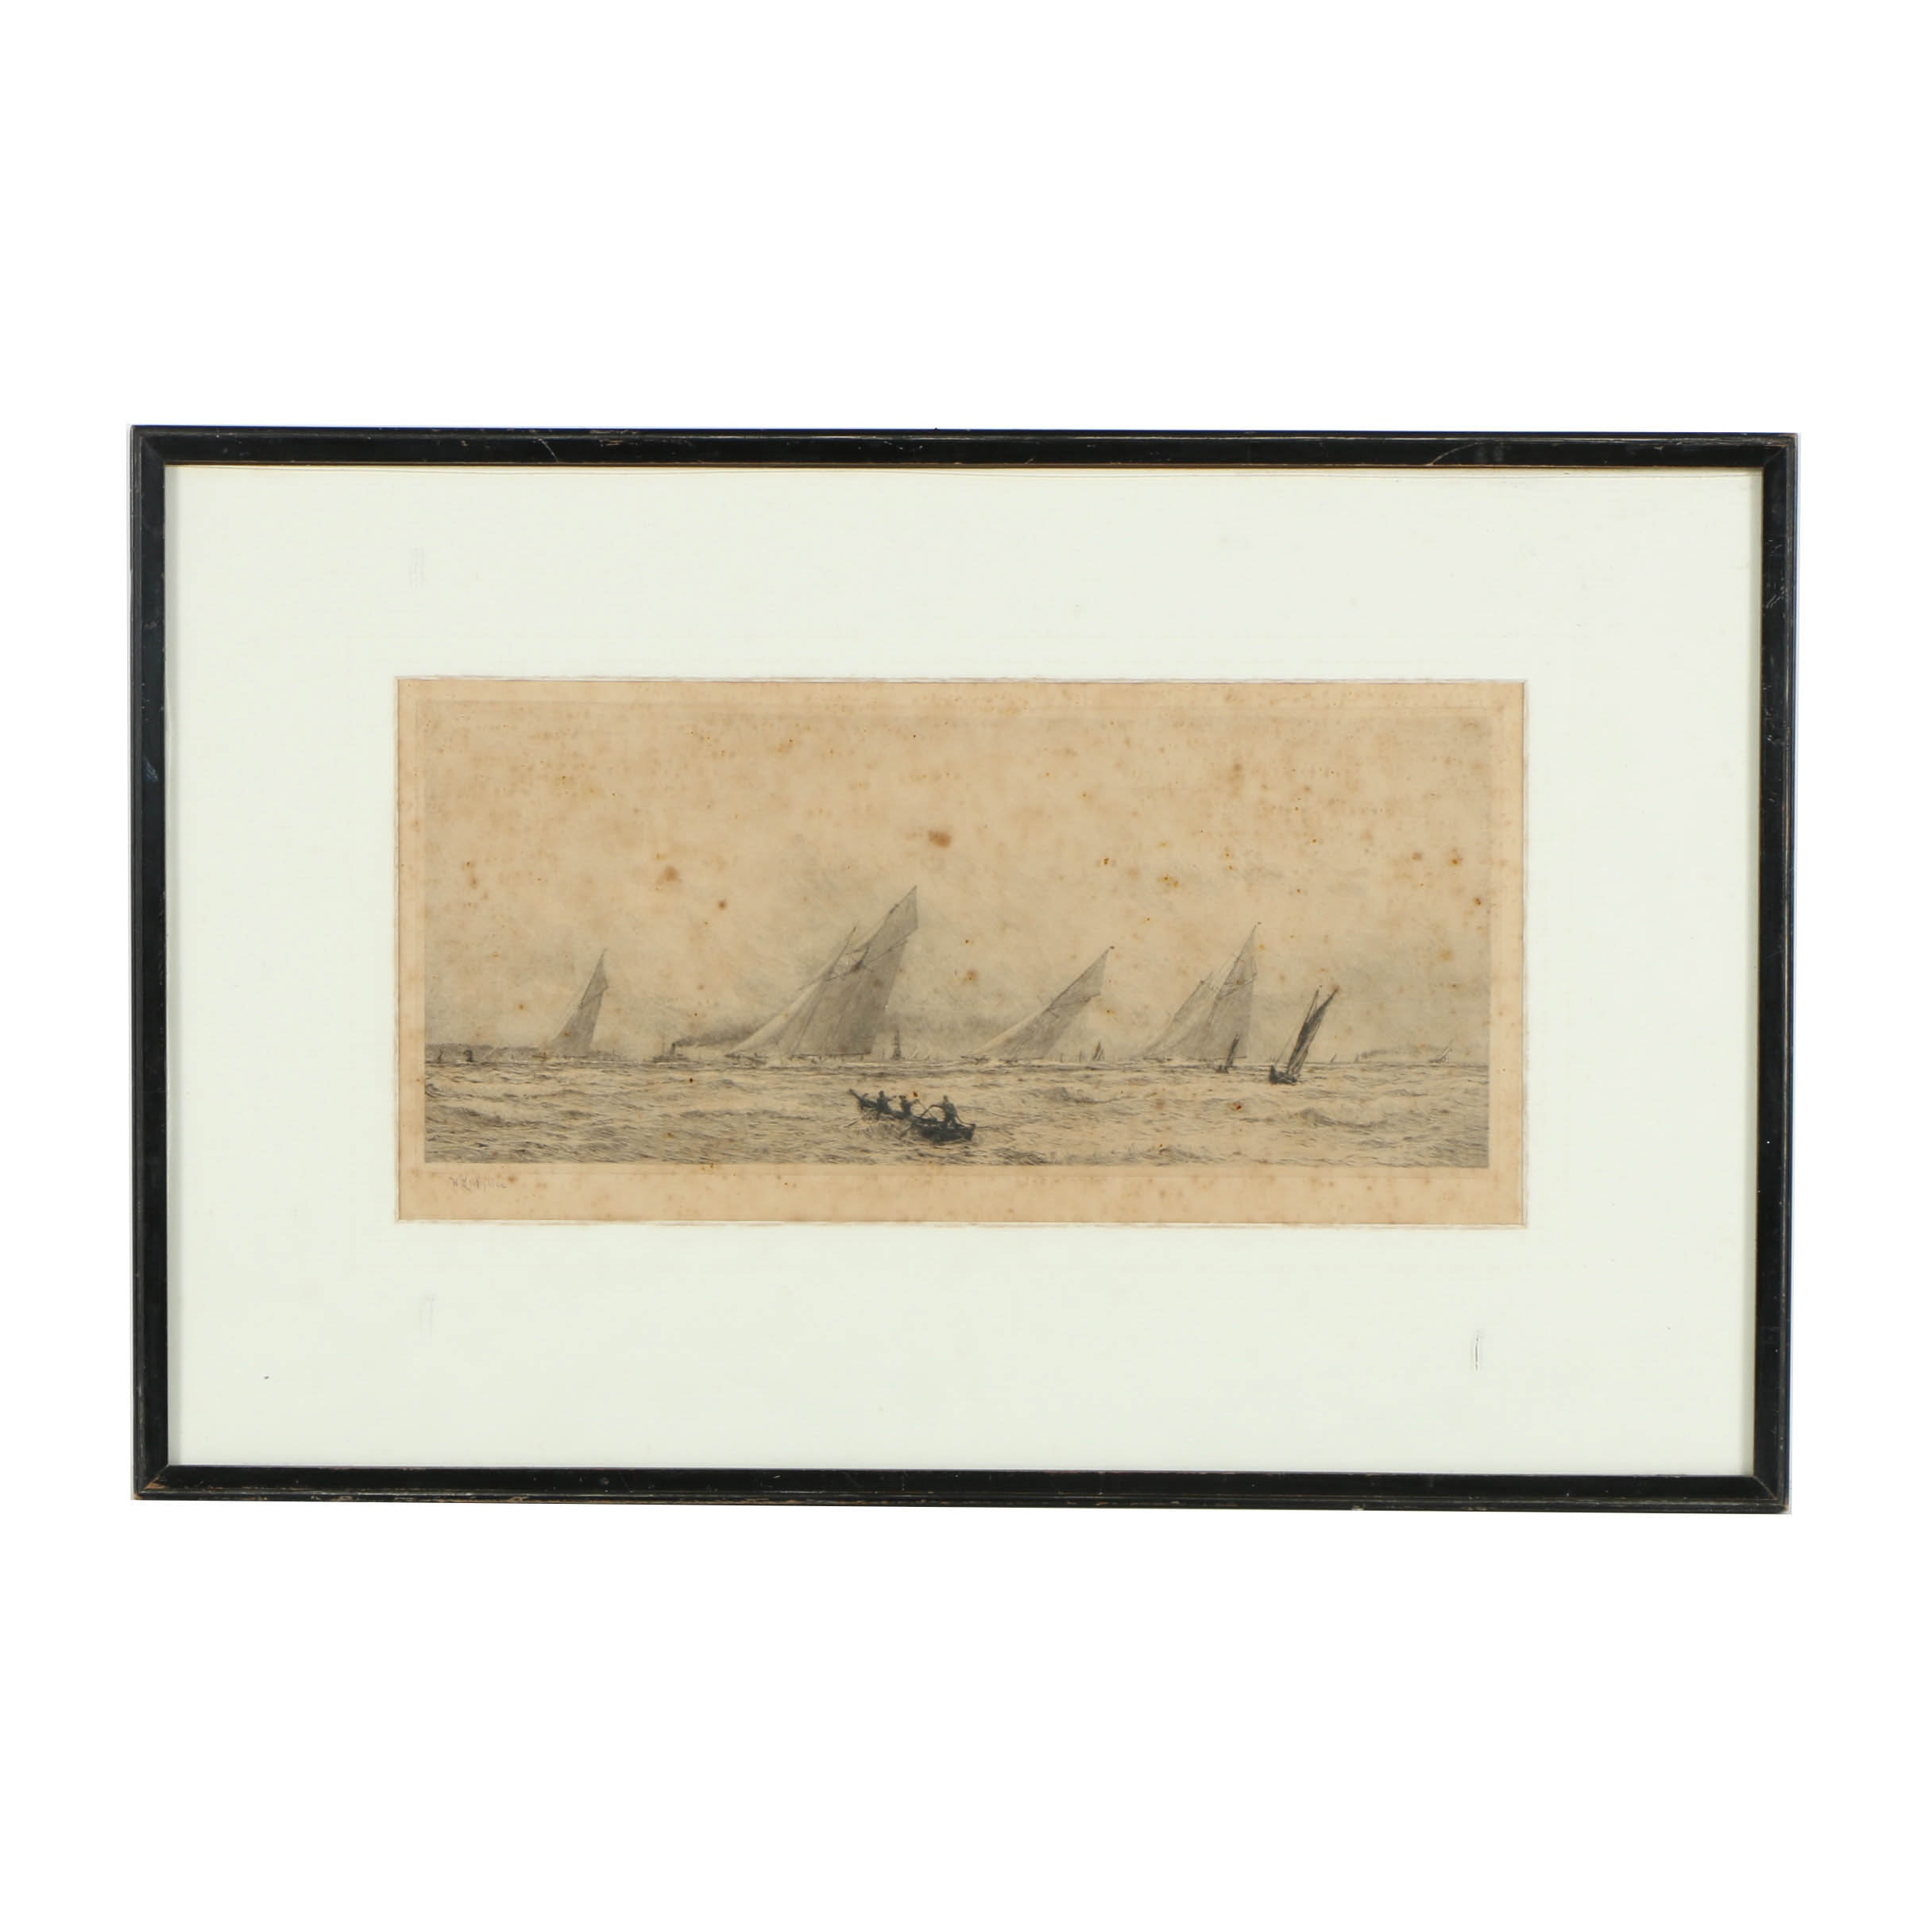 "W. L. Wyllie Drypoint Engraving on Paper ""Yacht Racing, Squally Weather"""